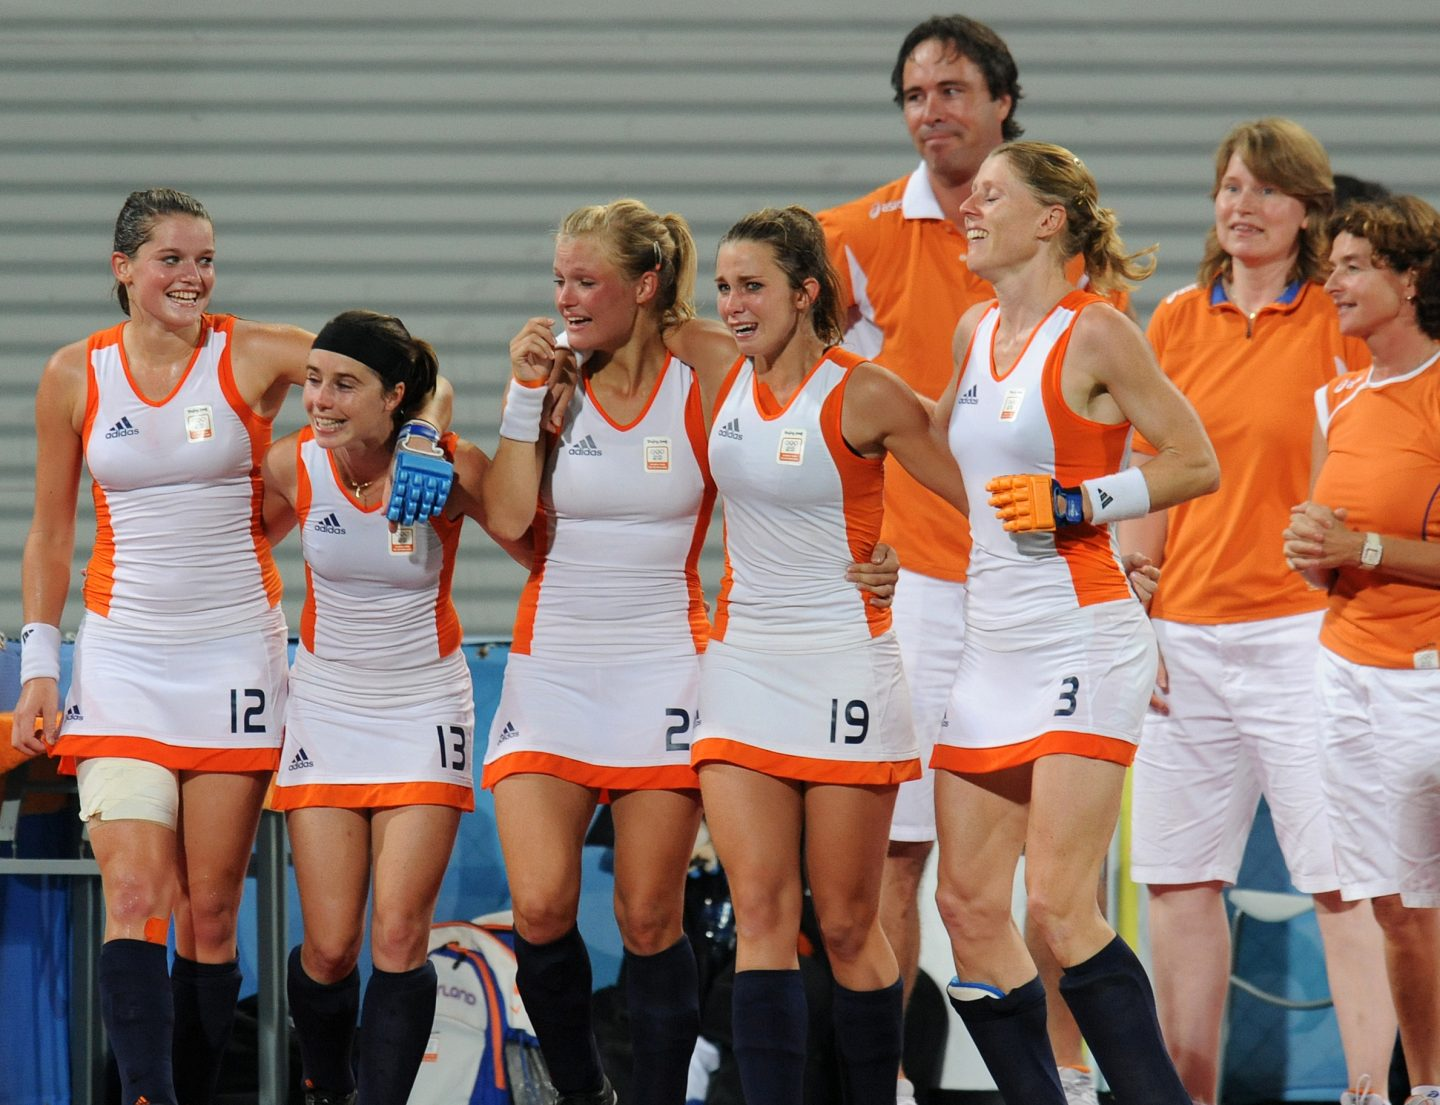 five teammates of the Dutch women's hockey team gathering after winning a match